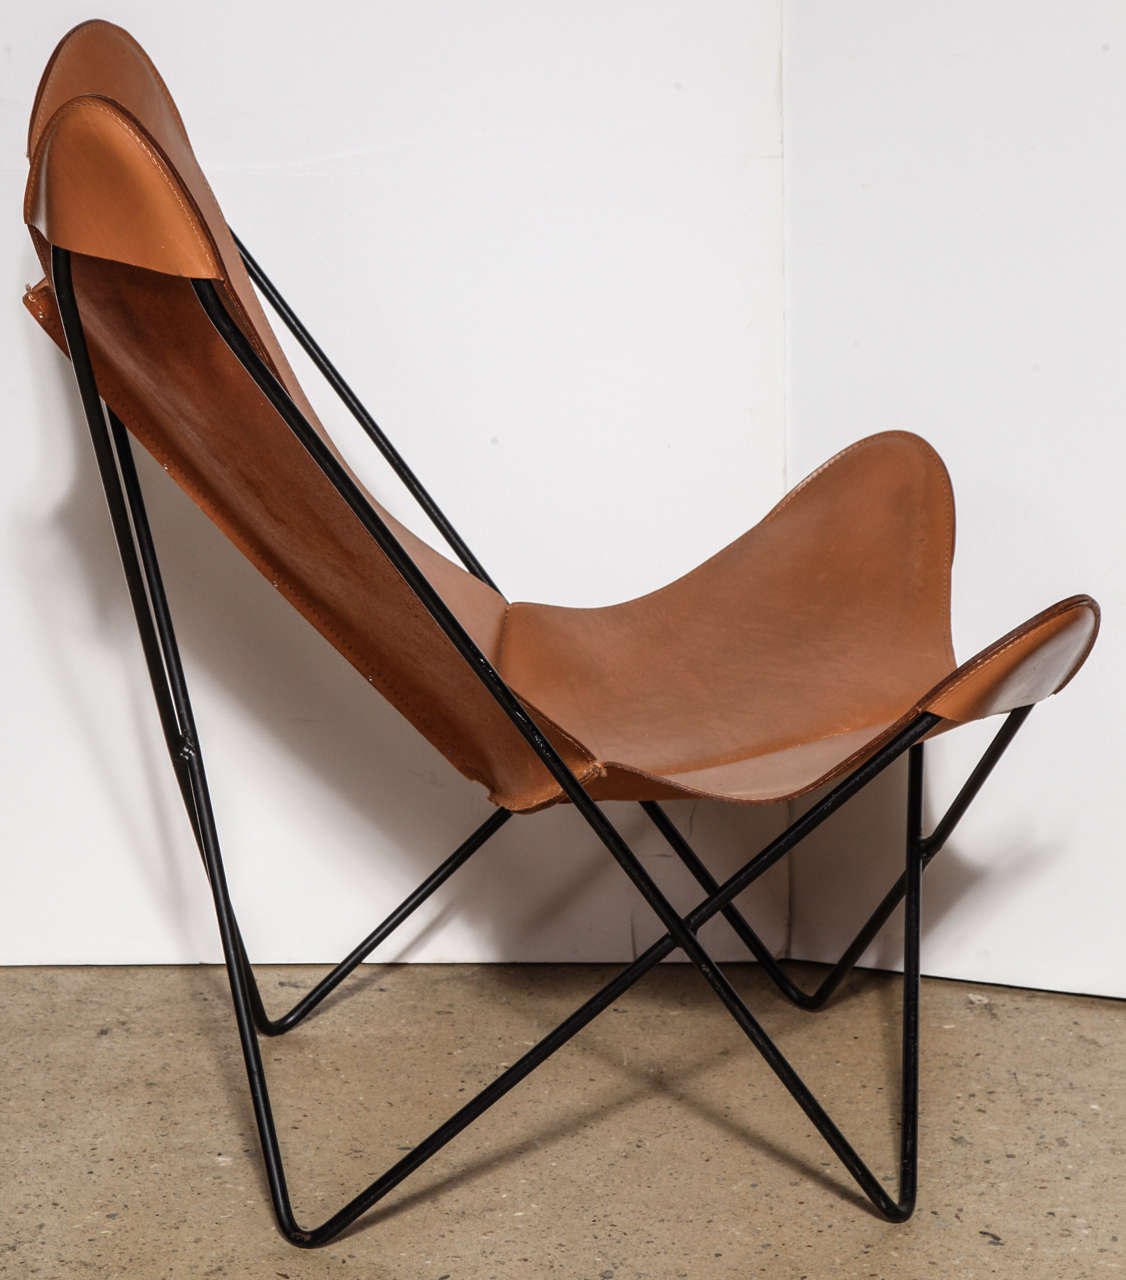 single knoll style hardoy butterfly chair at 1stdibs. Black Bedroom Furniture Sets. Home Design Ideas